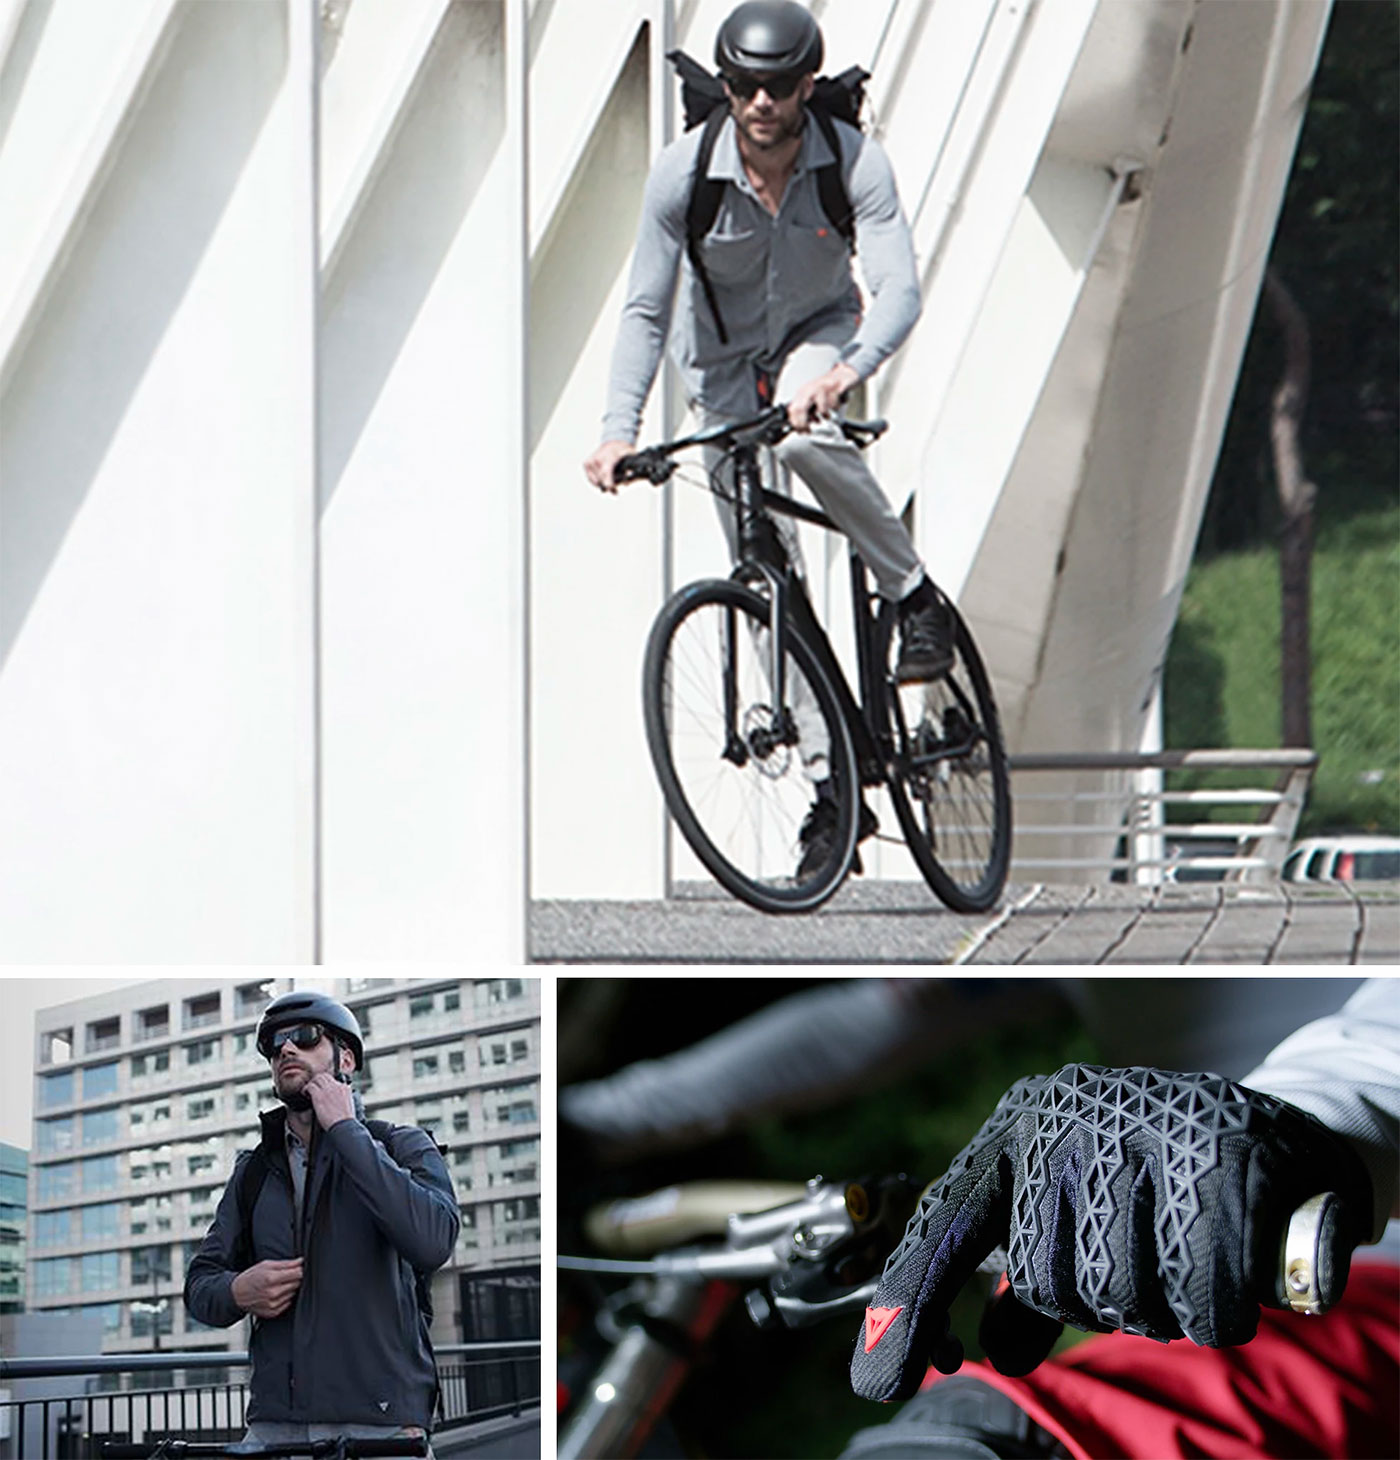 Dainese (Bicycles)